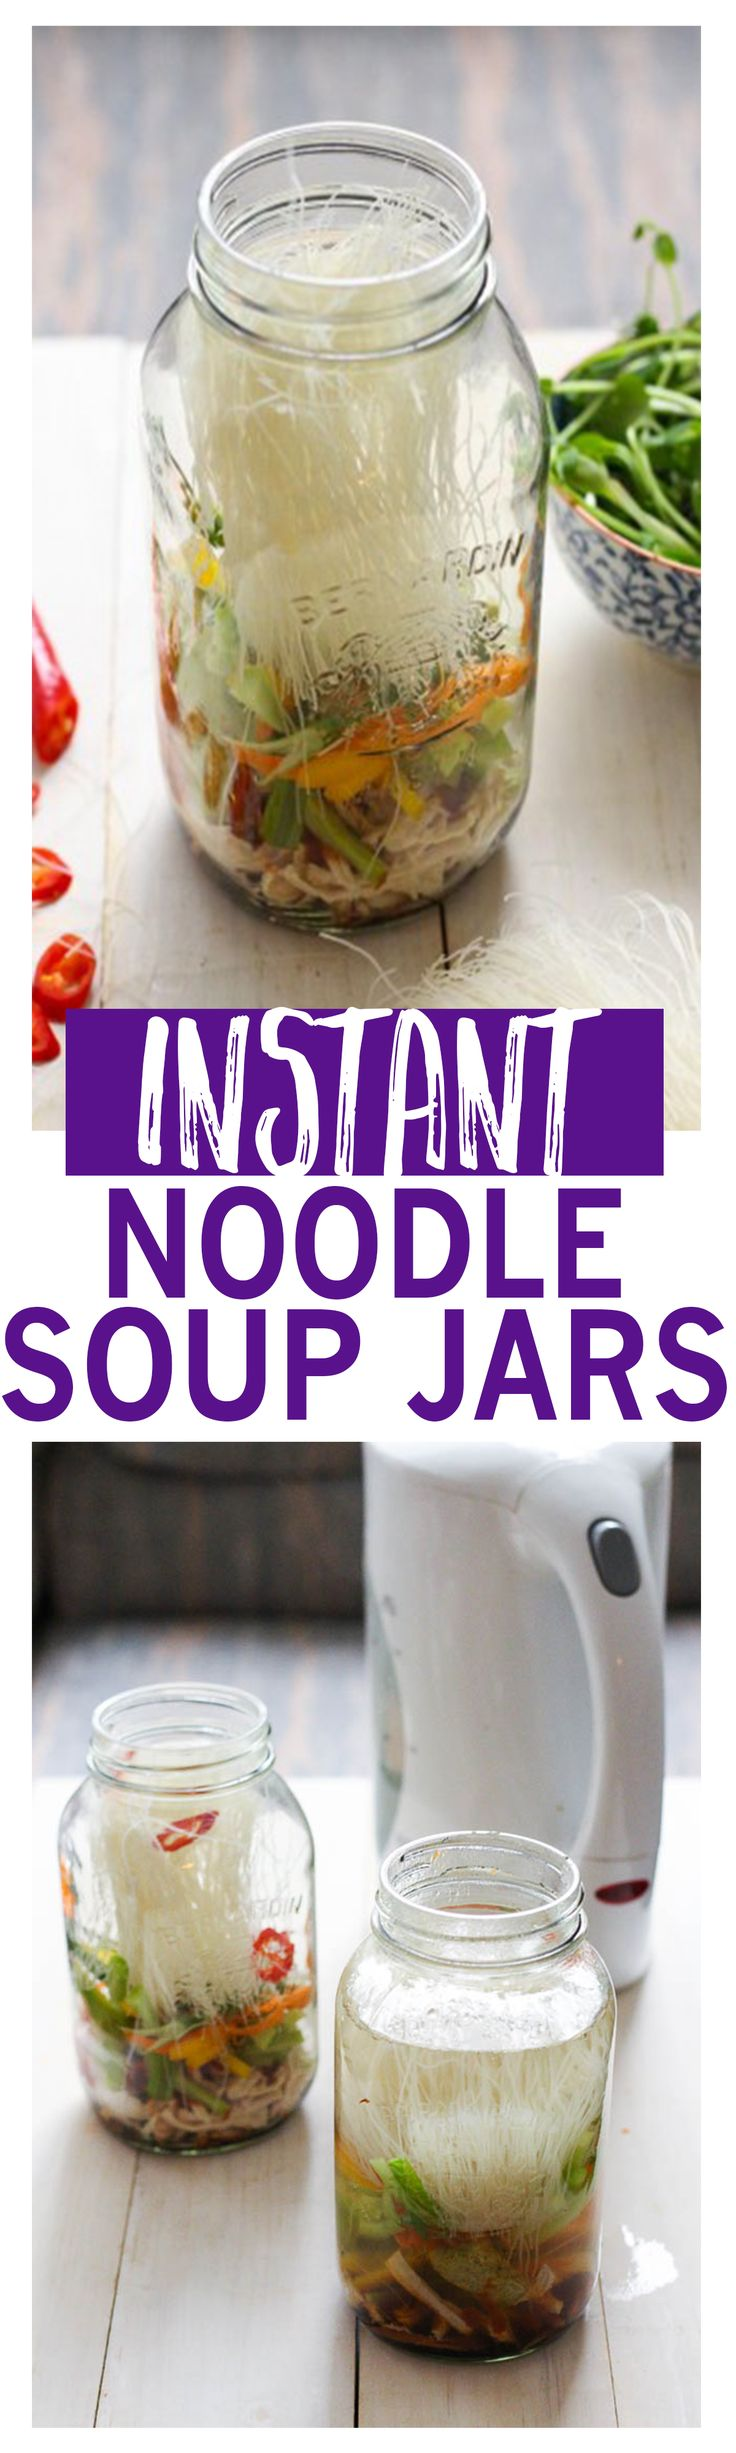 Instant Noodle Soups are the perfect on-the-go work lunch and packed full of vermicelli noodles & shredded chicken!